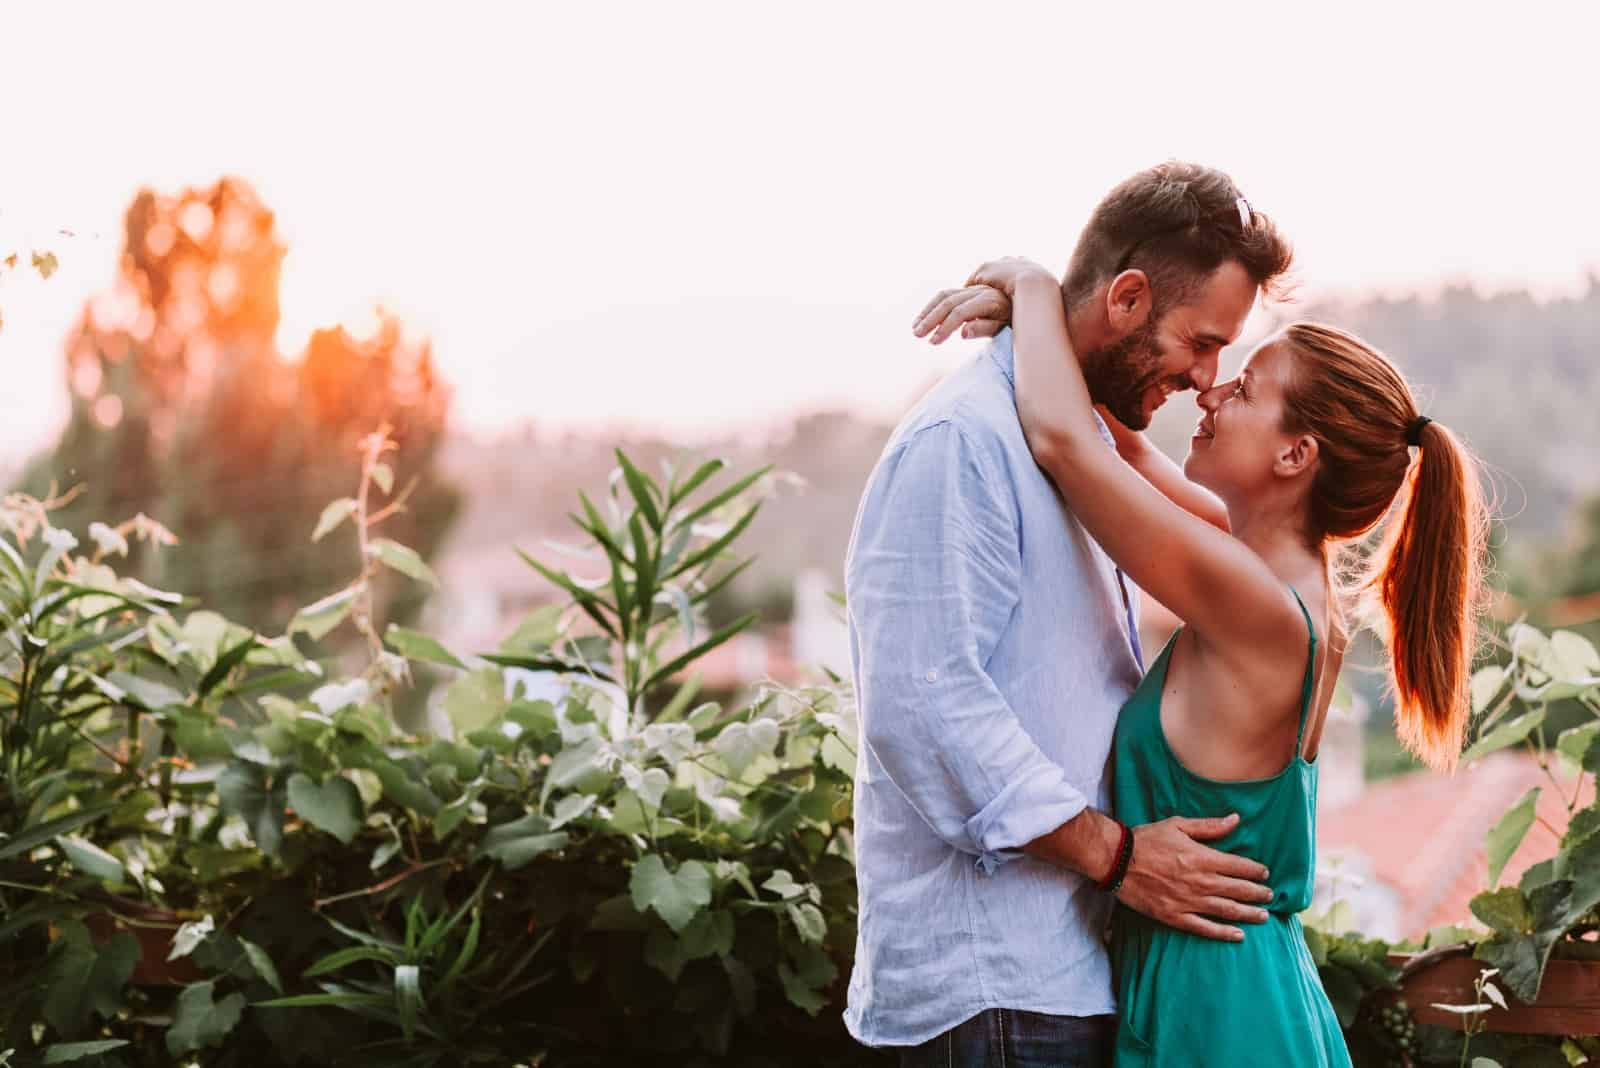 man and woman hugging while standing near plants